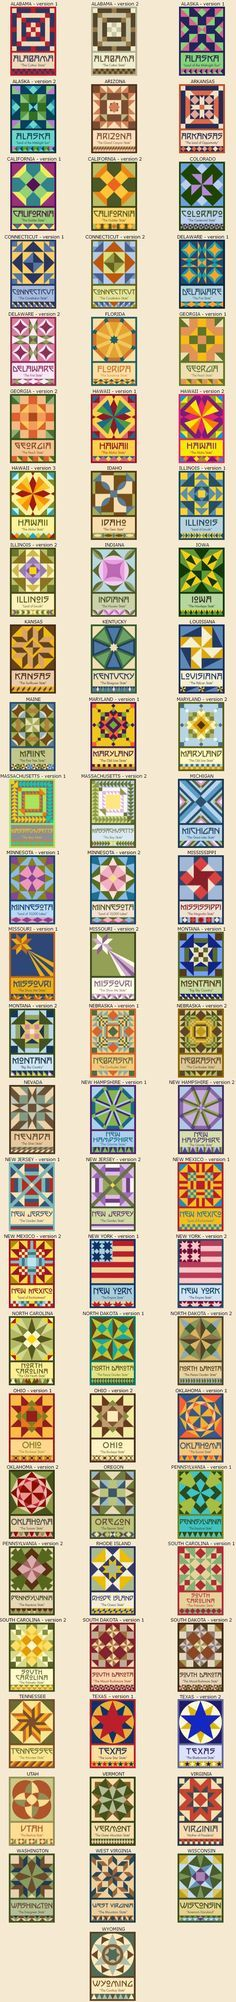 50 State Quilt Block Series by Susan Davis, owner of Olde American Antiques and American Quilt Blocks